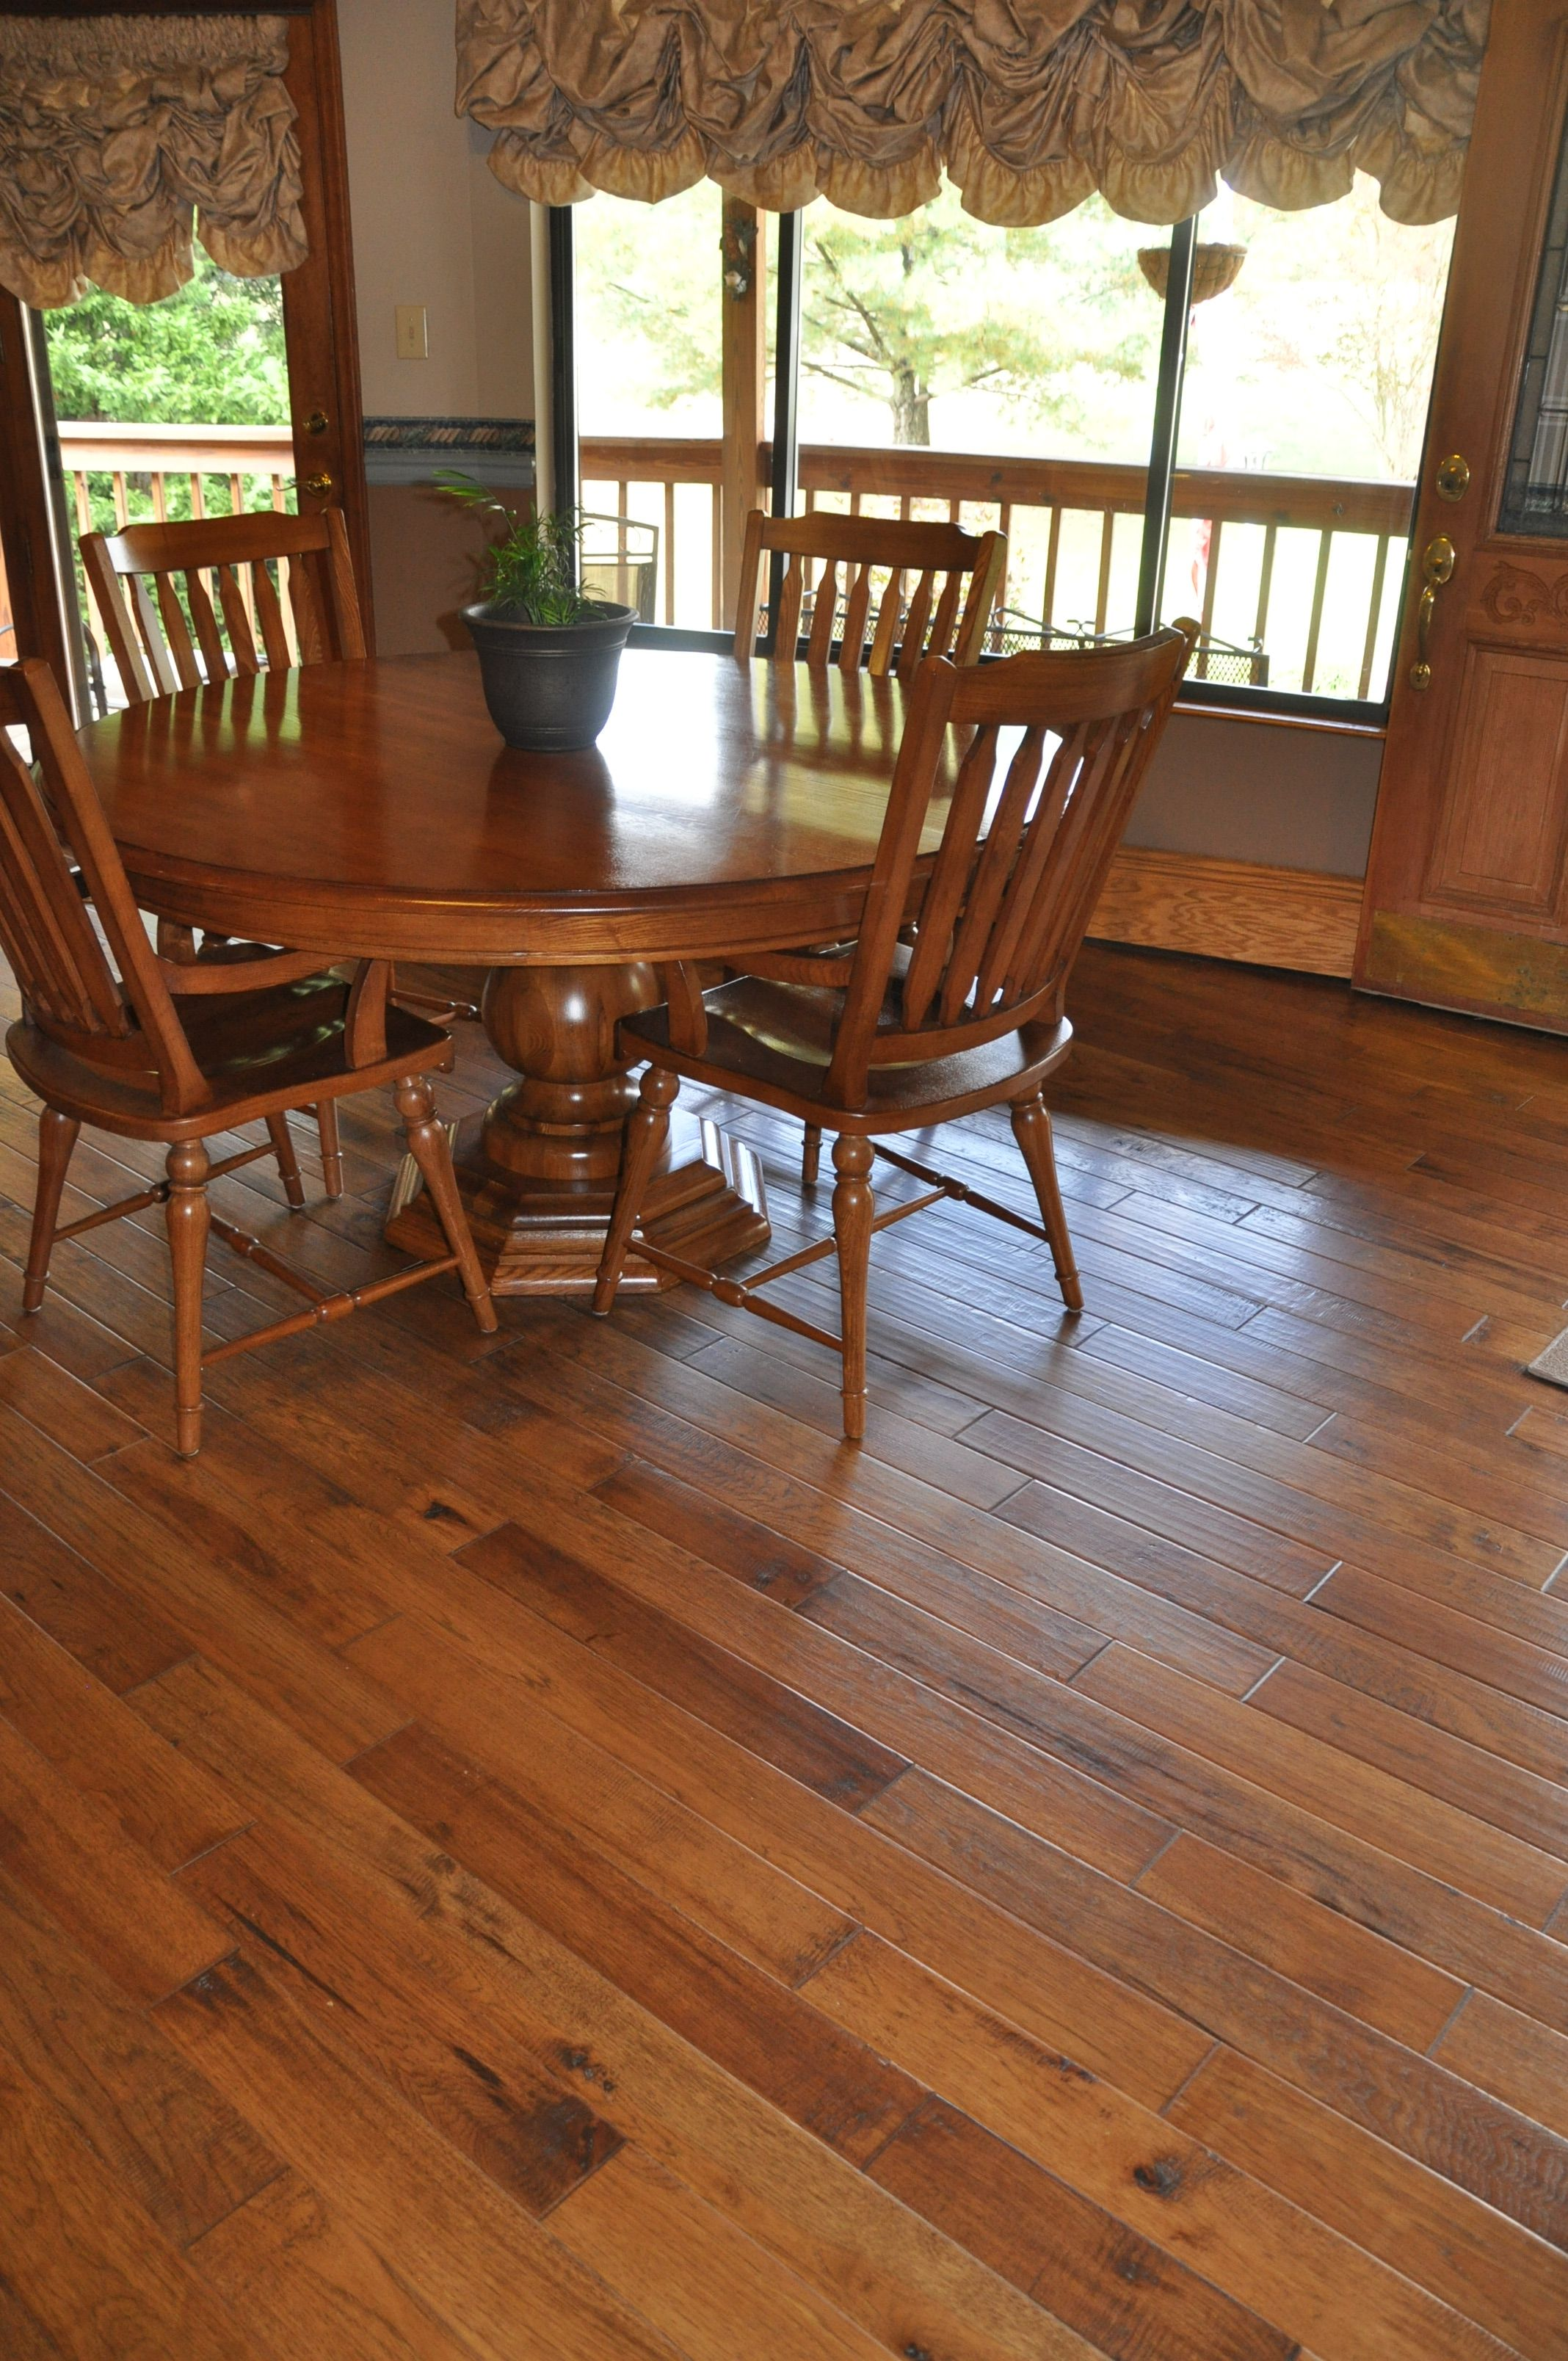 4 Knob Creek Hickory Saddle Hardwood Flooring Your Home Our Business Pinterest